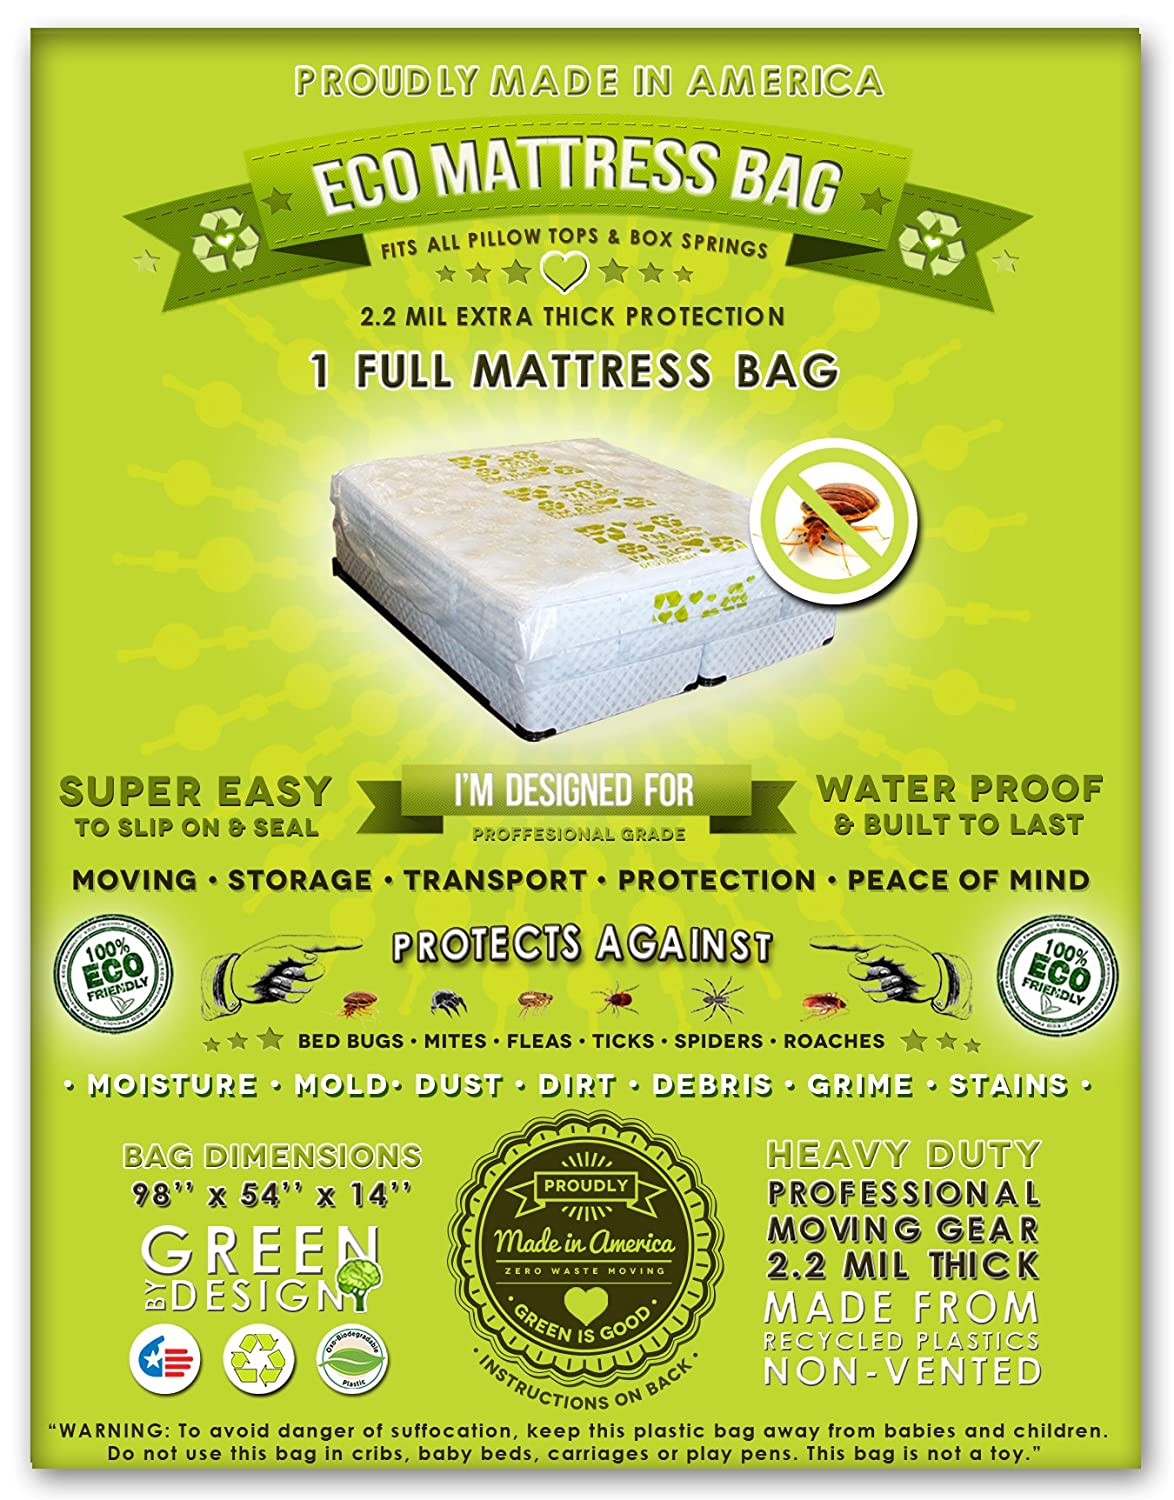 2 Full Size Mattress Bags. Fits All Pillow Tops and Box Springs. Ideal for Moving, Storage and Protecting Your Mattress. Heavy Duty Professional Grade. Easy to Slip on and Seal. Sleep with Peace of Mind and Don't Let the Bed